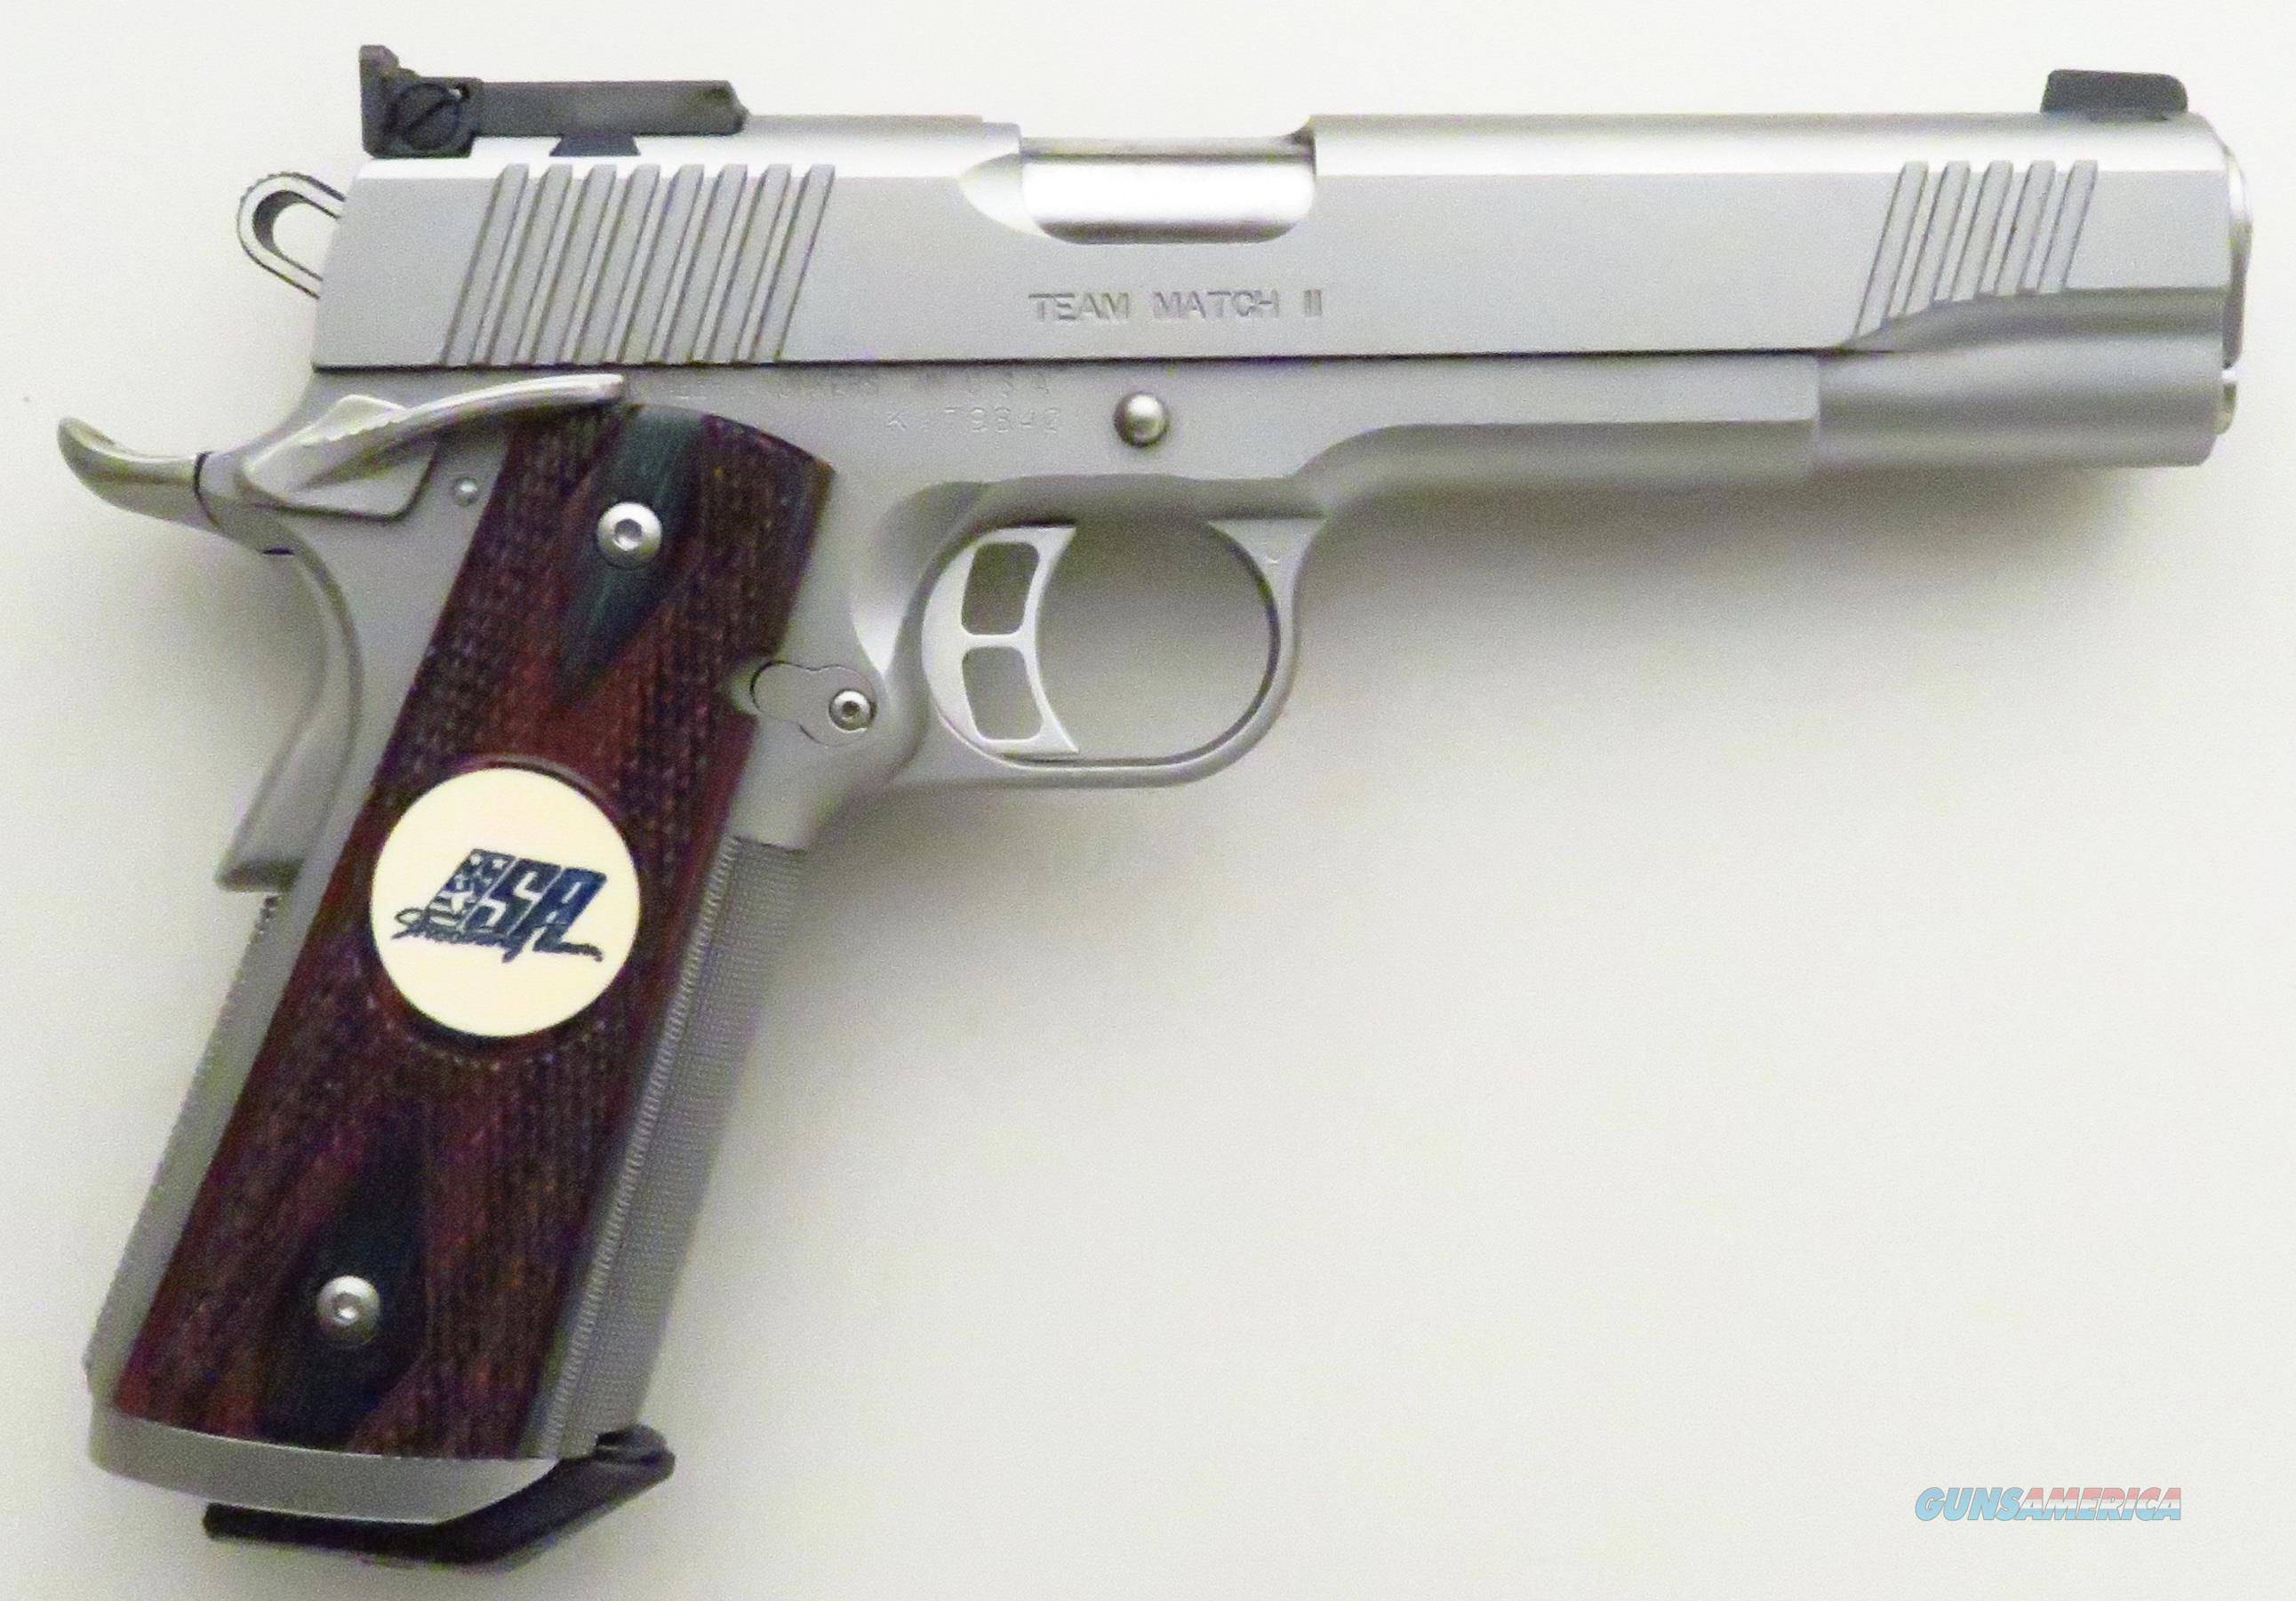 Kimber Team Match II .45 ACP, stainless steel, match grade, ambidextrous, adjustable sight  Guns > Pistols > Kimber of America Pistols